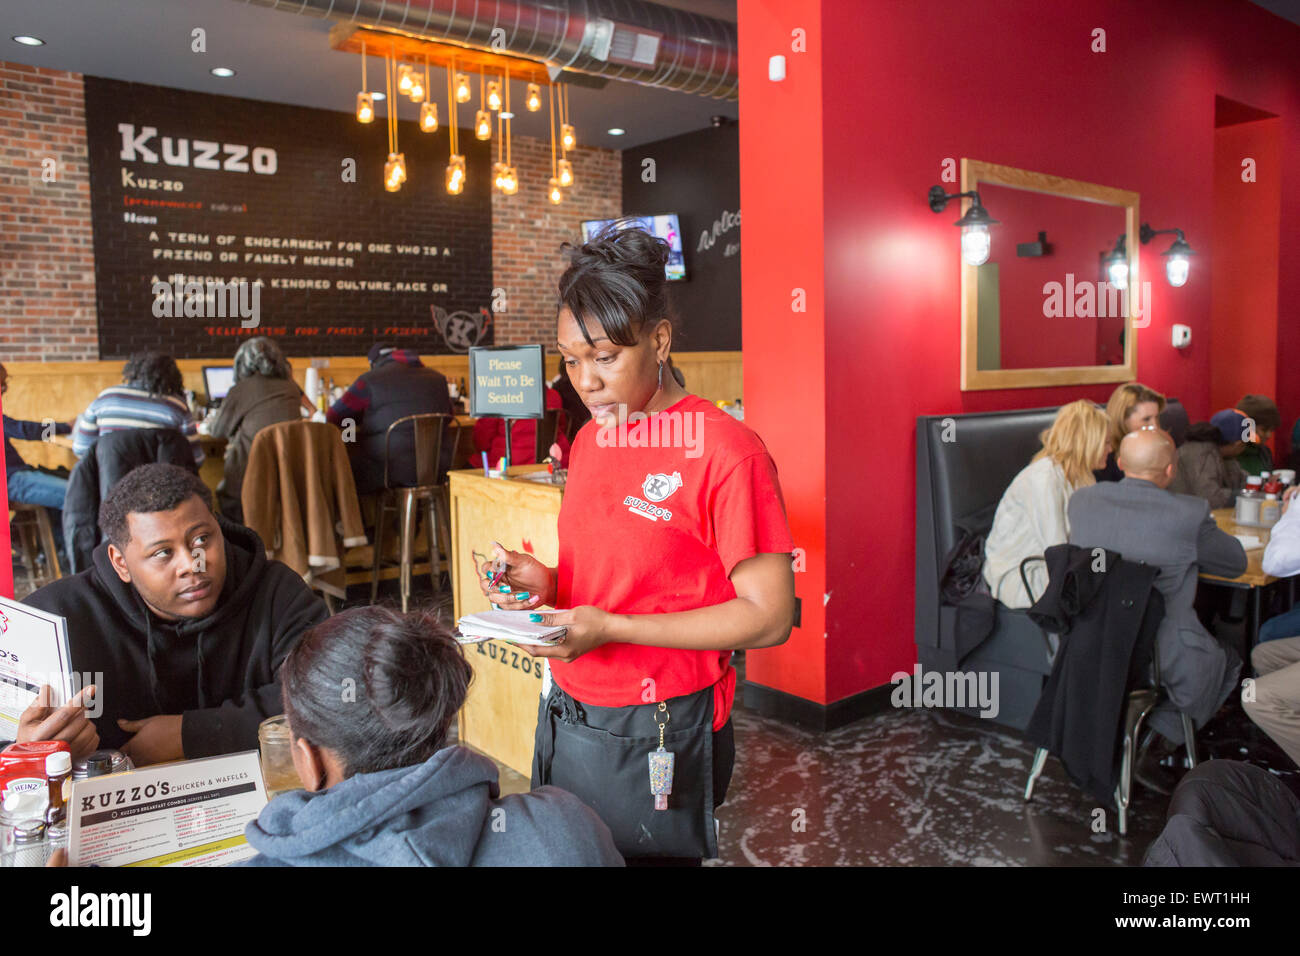 Detroit, Michigan - A server takes an order at Kuzzo's Chicken & Waffles. - Stock Image